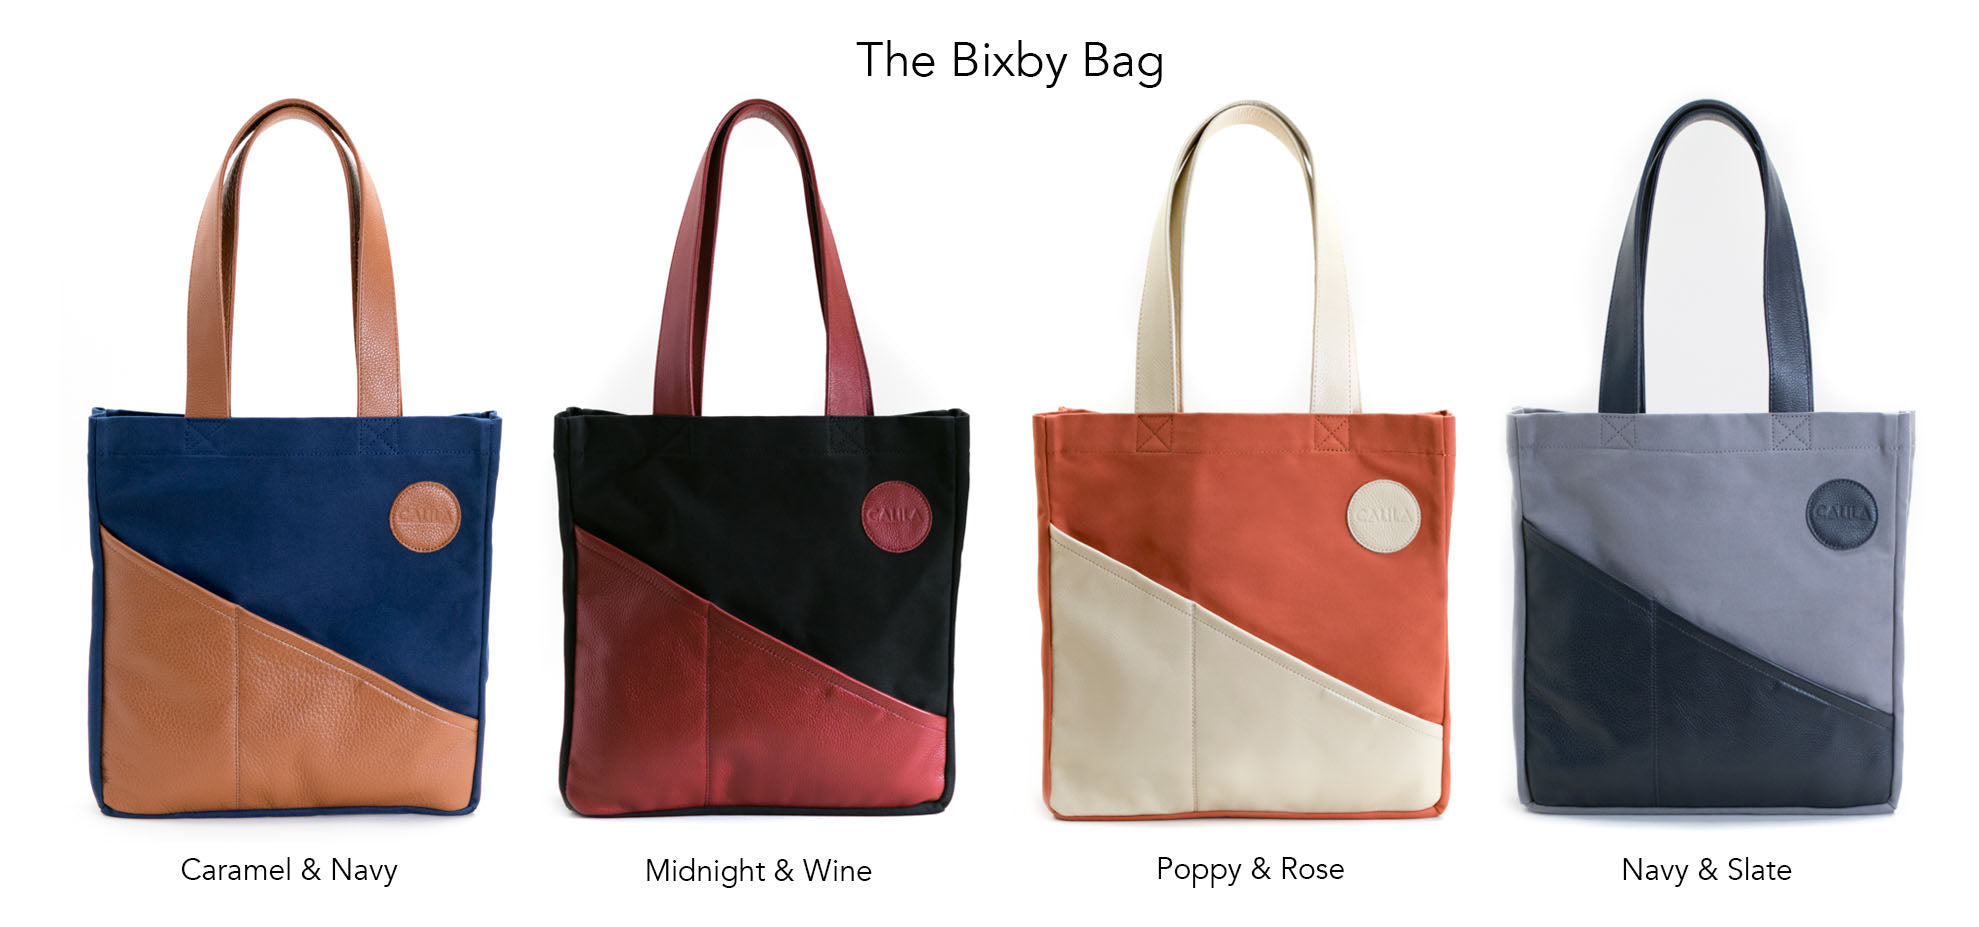 Made in Downtown Los Angeles - The Bixby Bag by Calila Designs L.A.